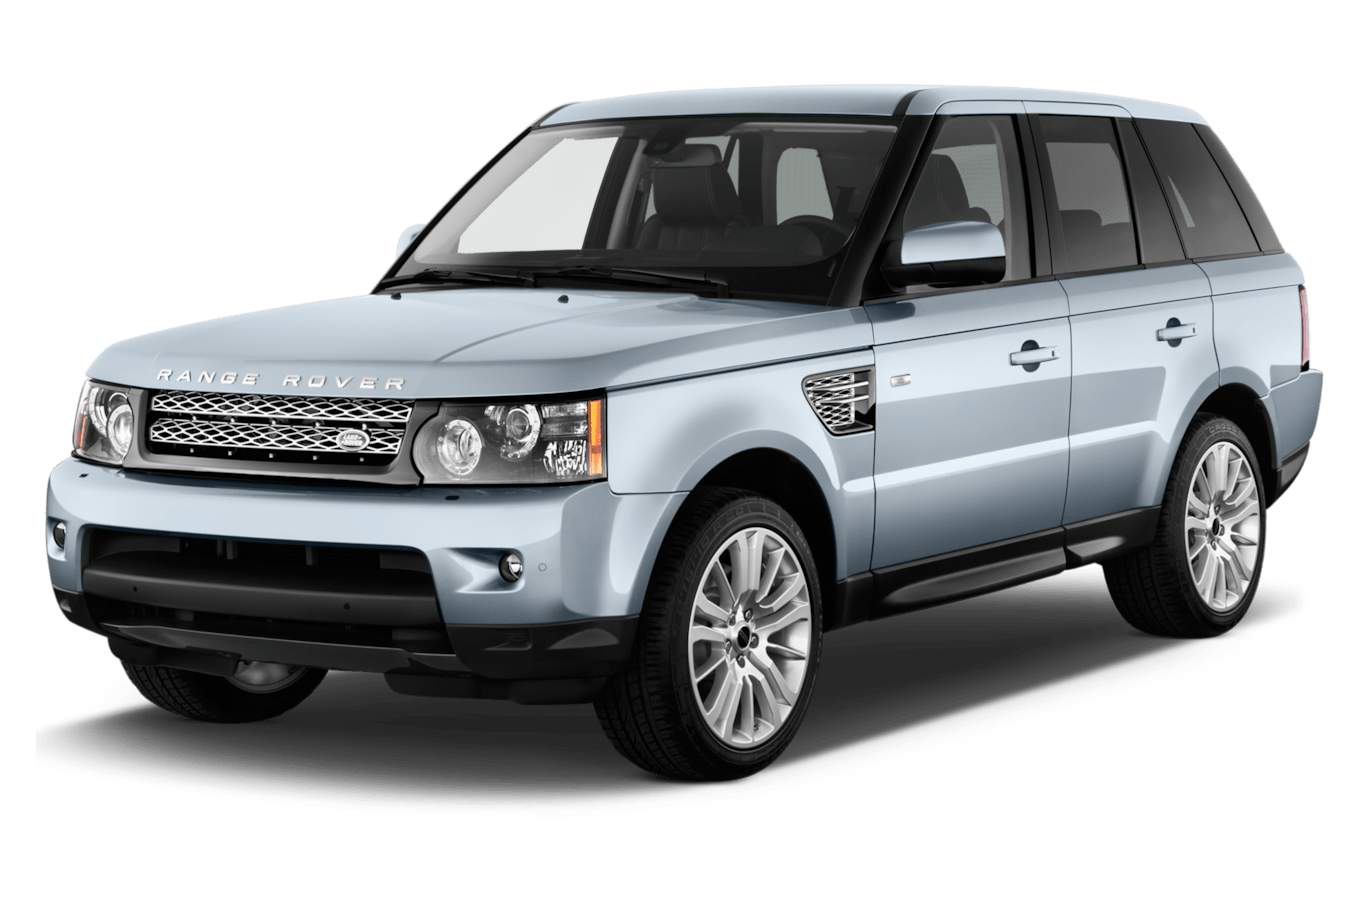 Landrover Range 2012 Land Rover Range Rover Sport Reviews And Rating Motortrend